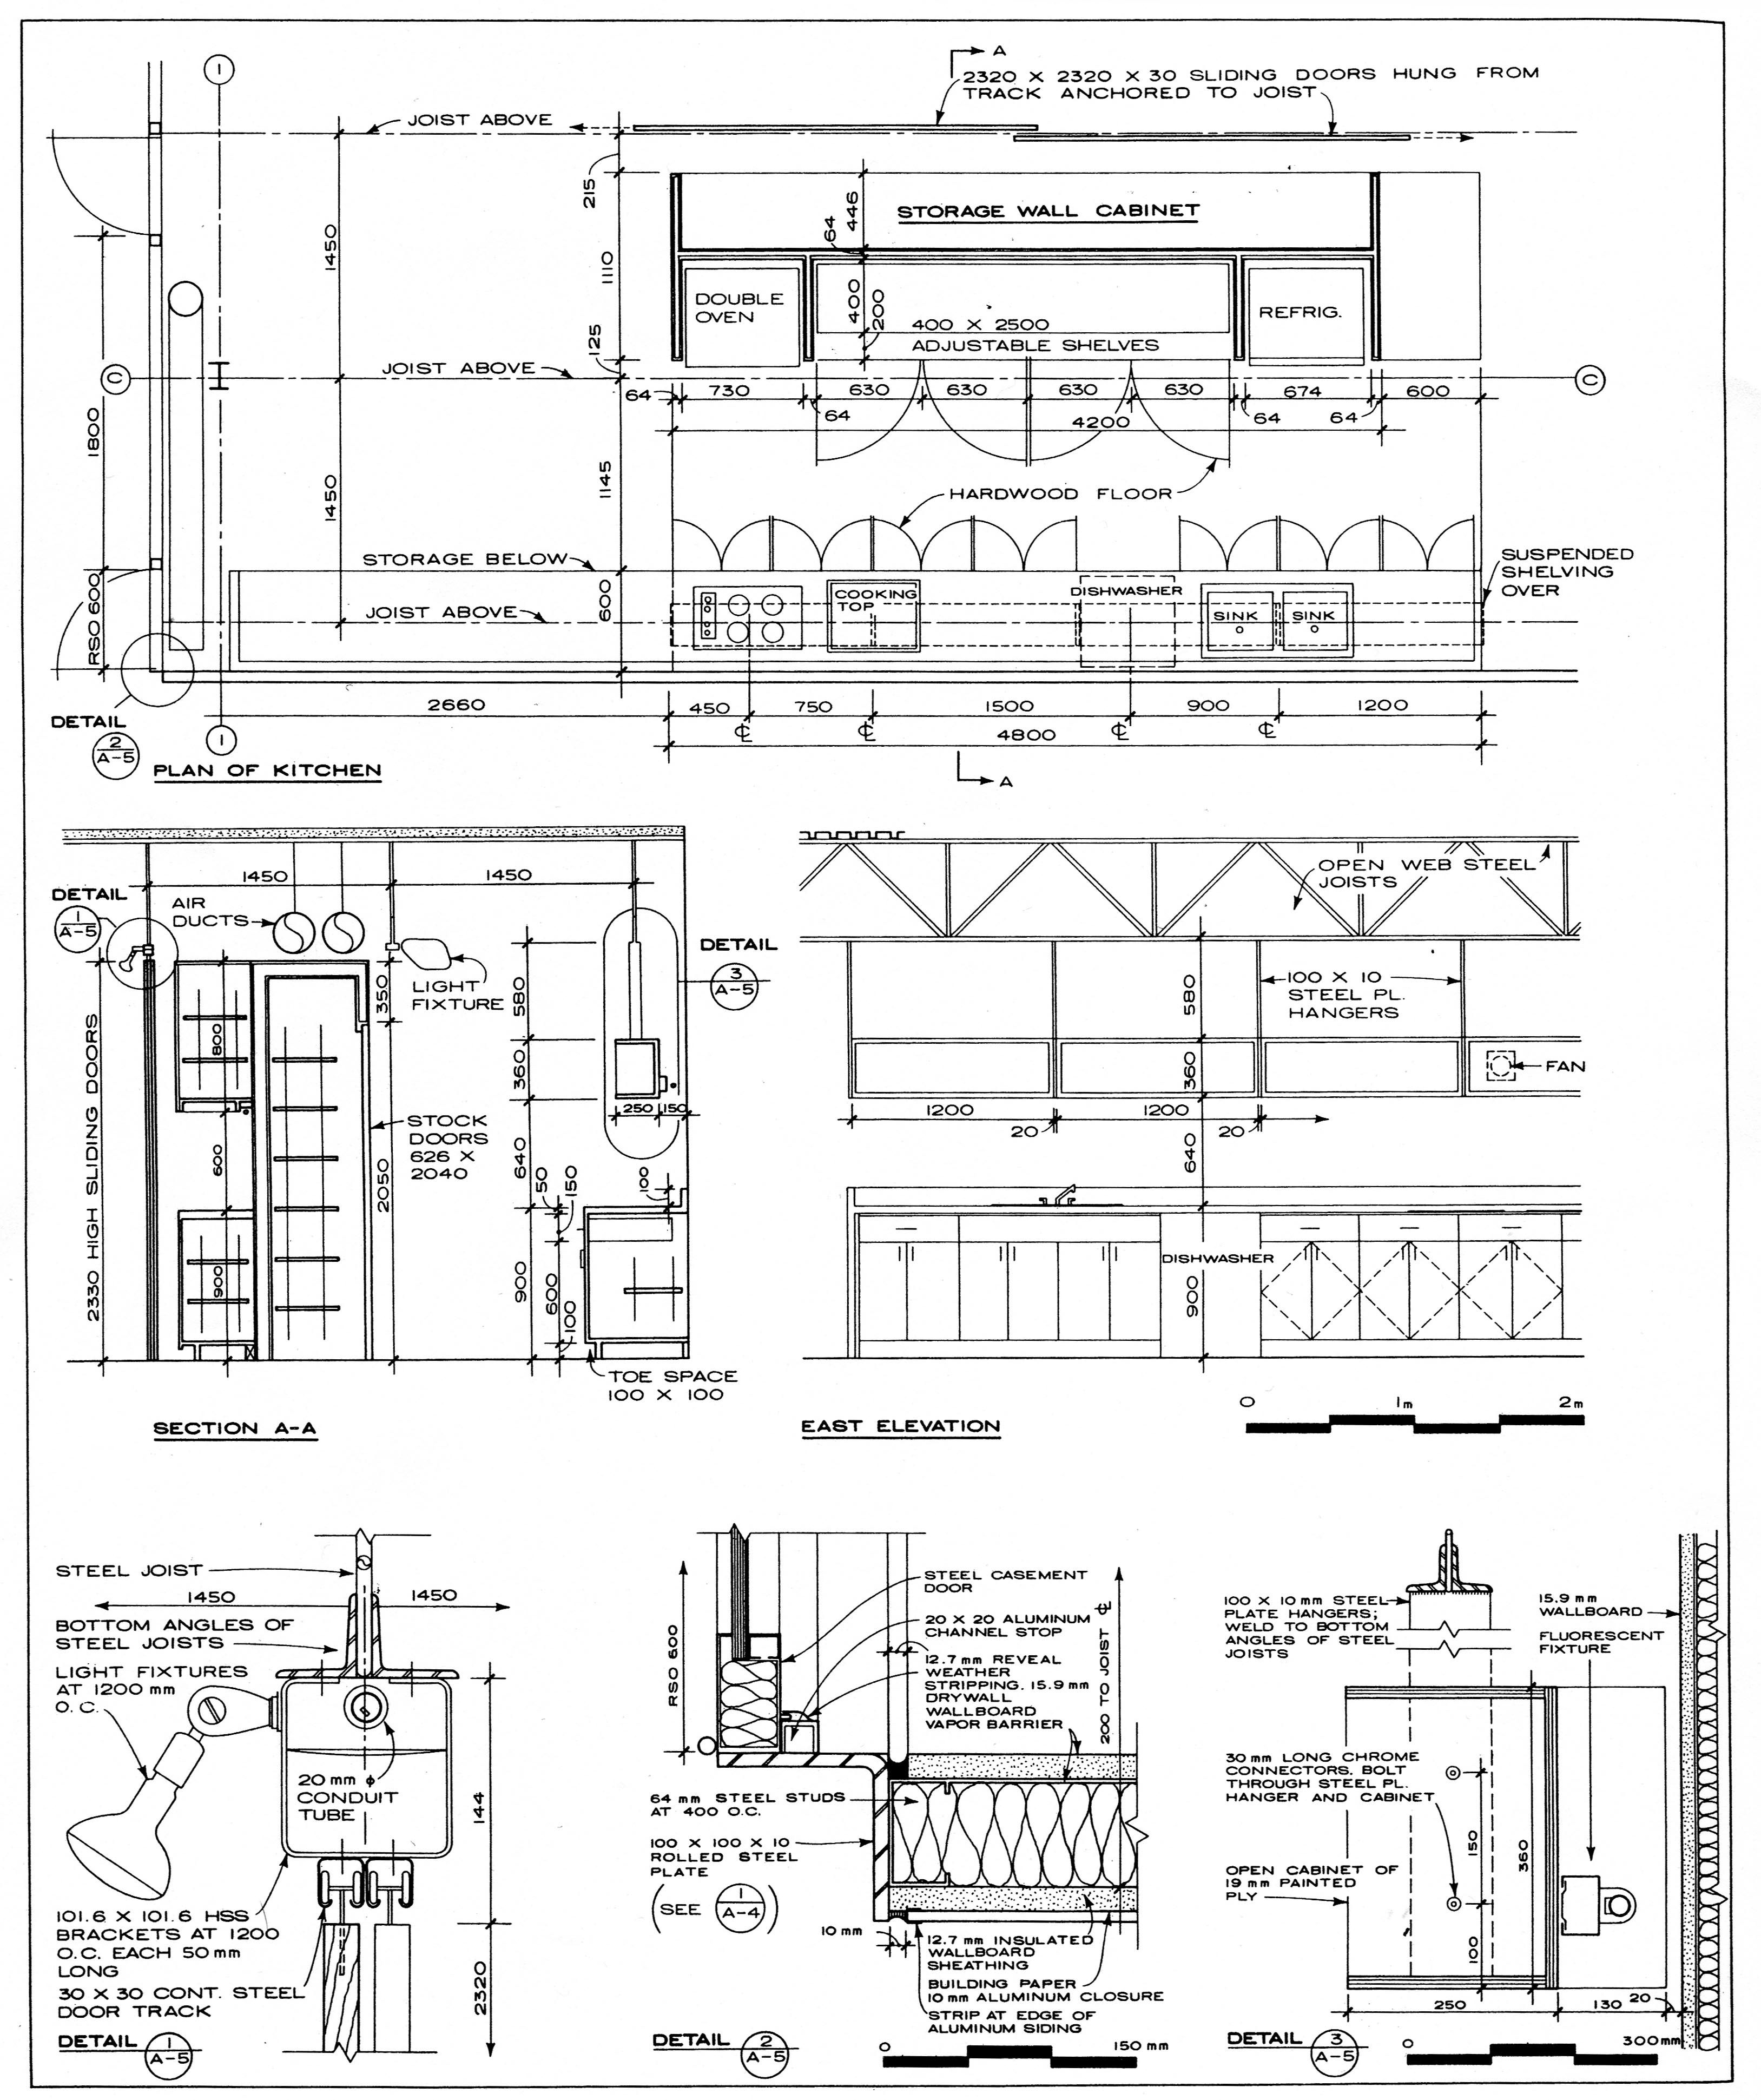 Plan Enlargements, Interior Elevations, And Details From